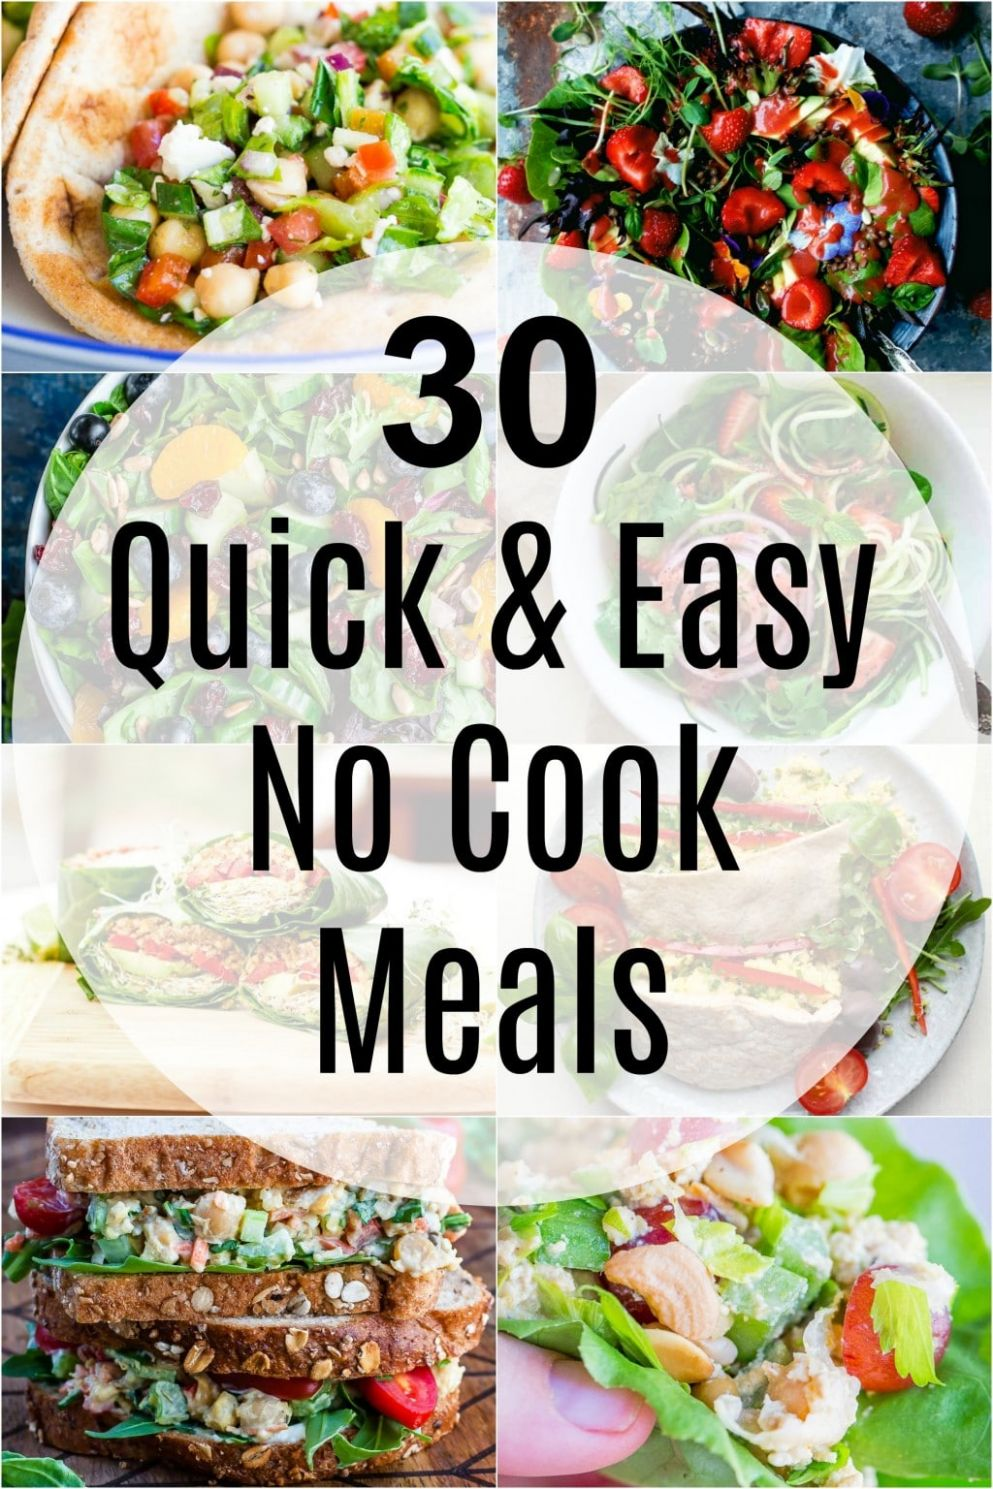 11 Quick and Easy No Cook Meals - She Likes Food - Summer Recipes No Cooking